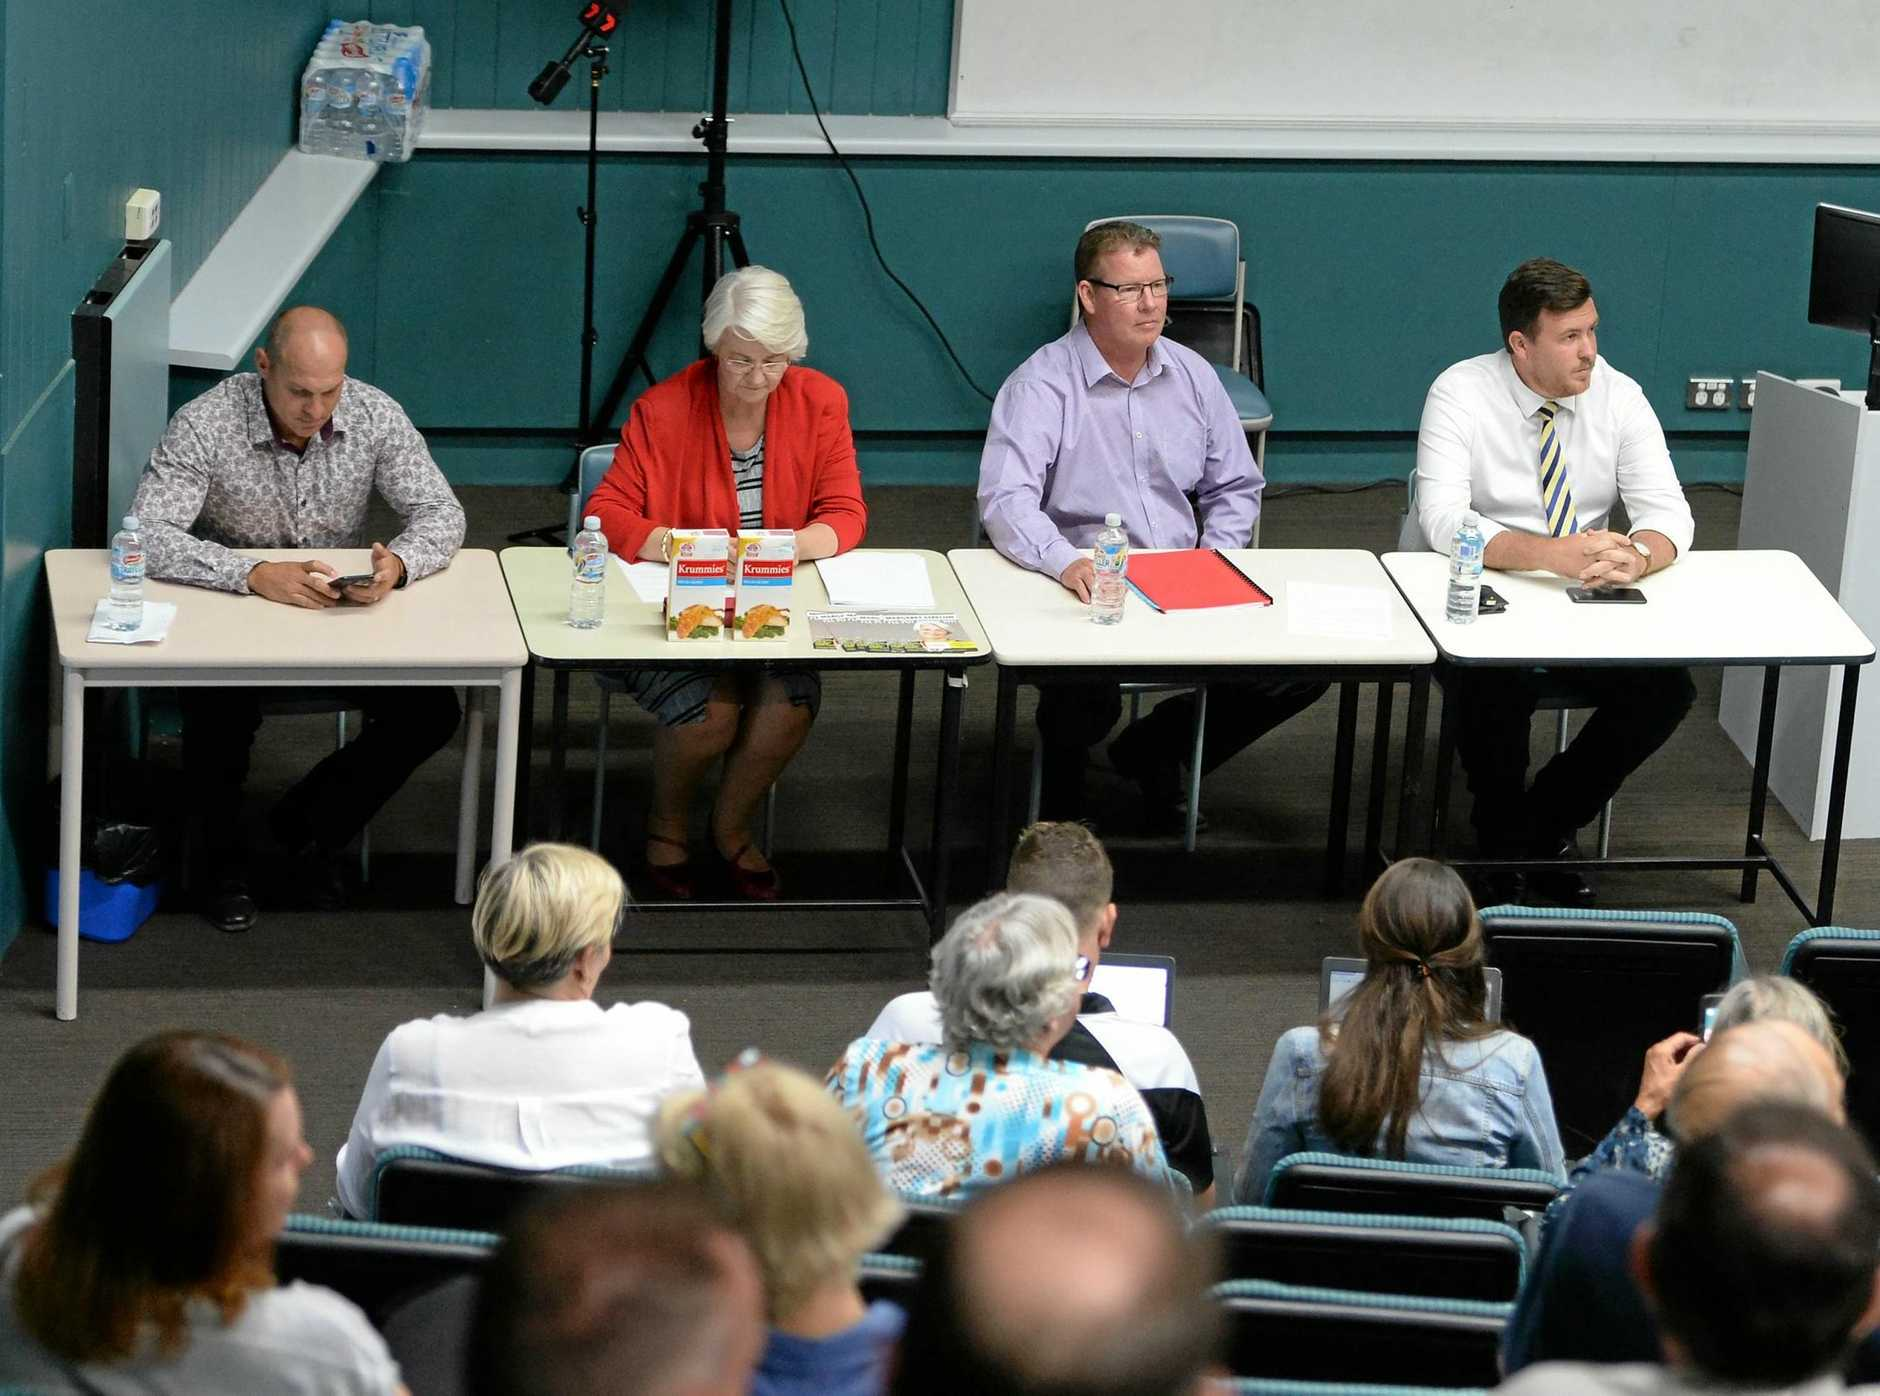 L-R Rockhampton candidates Wade Rothery (One Nation), Margaret Strelow (Independent), Barry O'Rourke (ALP), and Douglas Rodgers (LNP) at the candidates forum at CQUniversity.